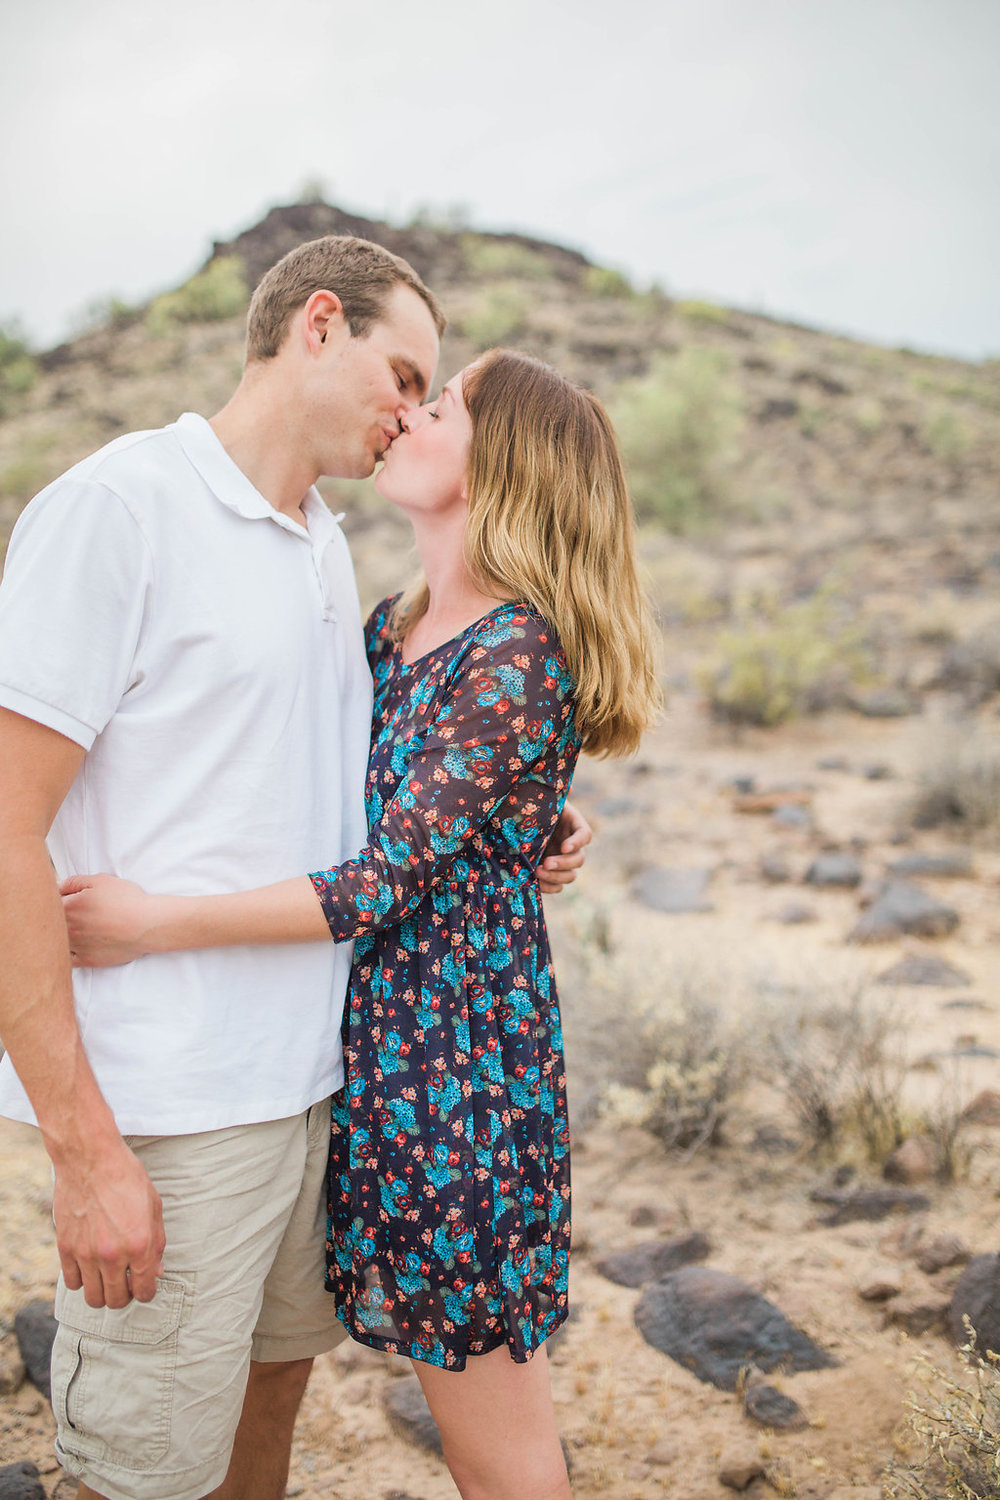 Desert Family Photo Shoot in Arizona   Emma Rose Company   Portrait Photographer   Seattle Wedding Photographer   Adorable Family Photo Shoot Outside   Family Posing   Cute Kids with Dad   Family Photo Shoot   Husband and Wife Pictures   What to Wear for pictures   Kiss shot